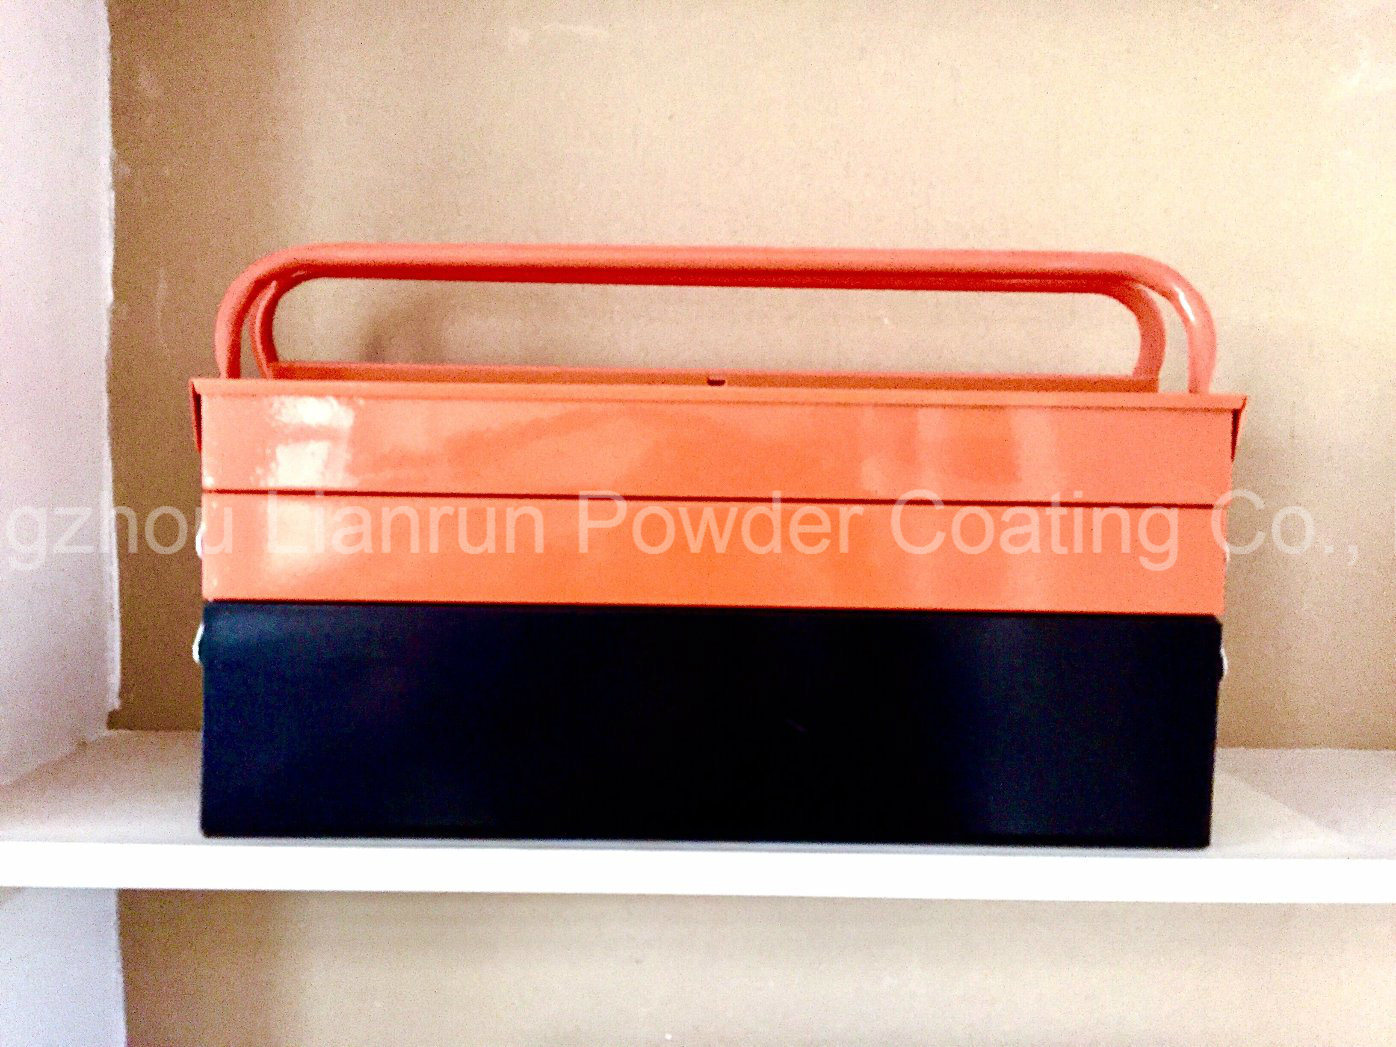 Special Powder Coating Toolkit